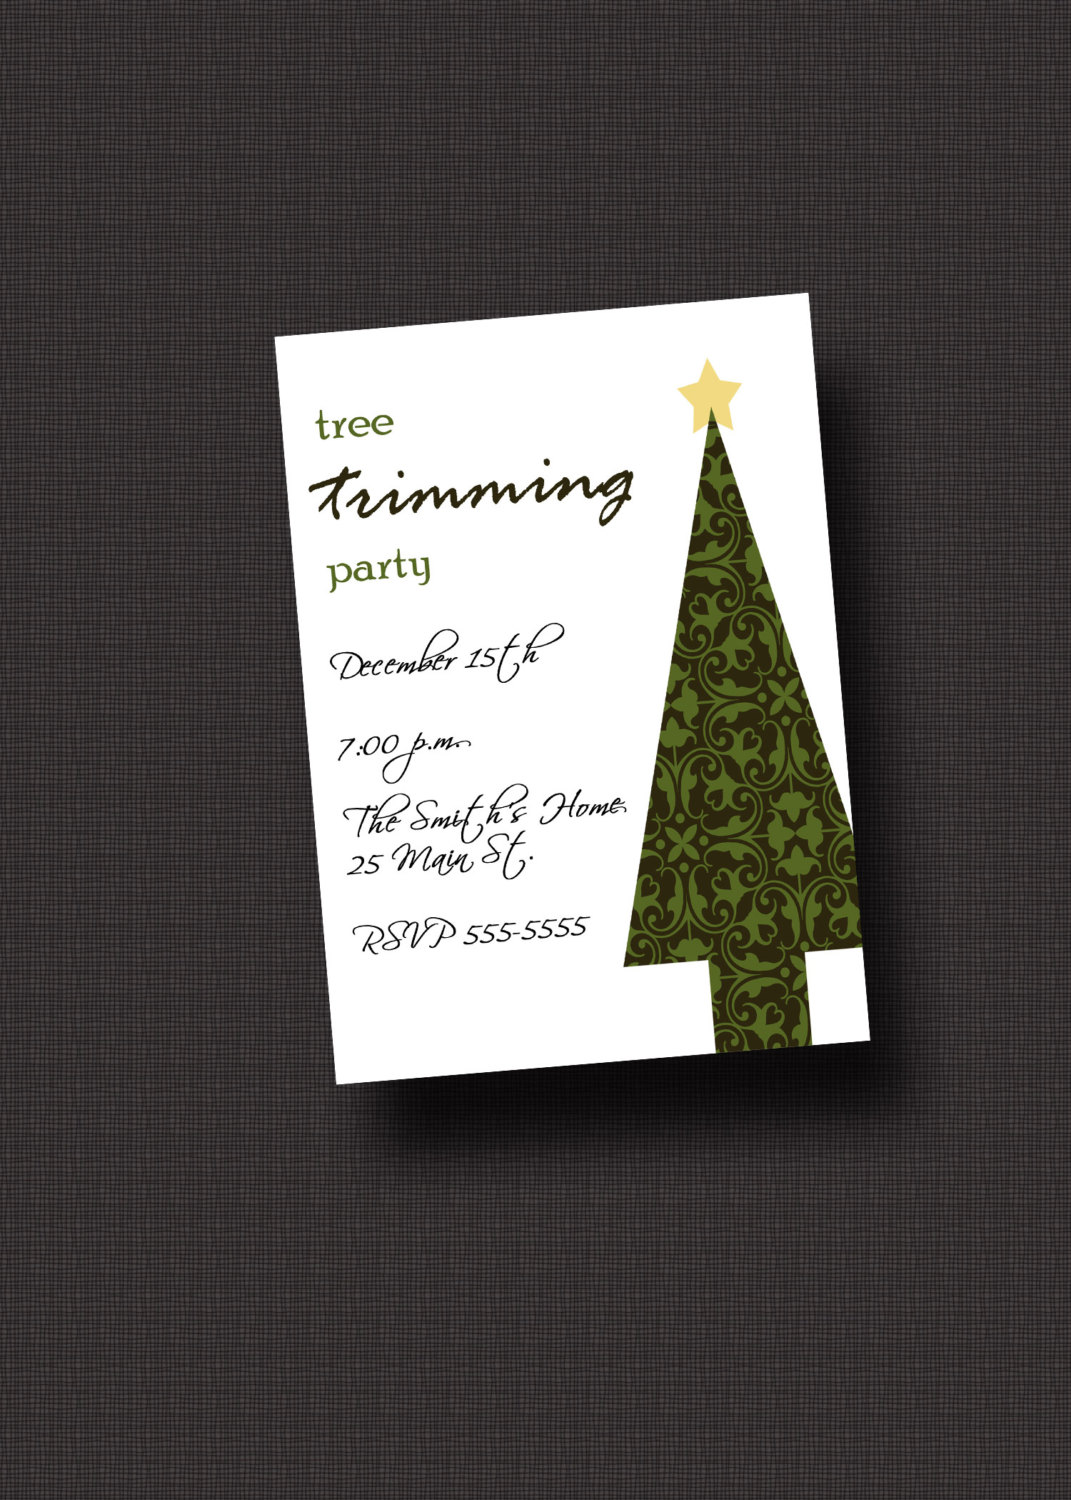 Christmas_Tree_Trimming_Party_Ideas_Invitation_3.jpg